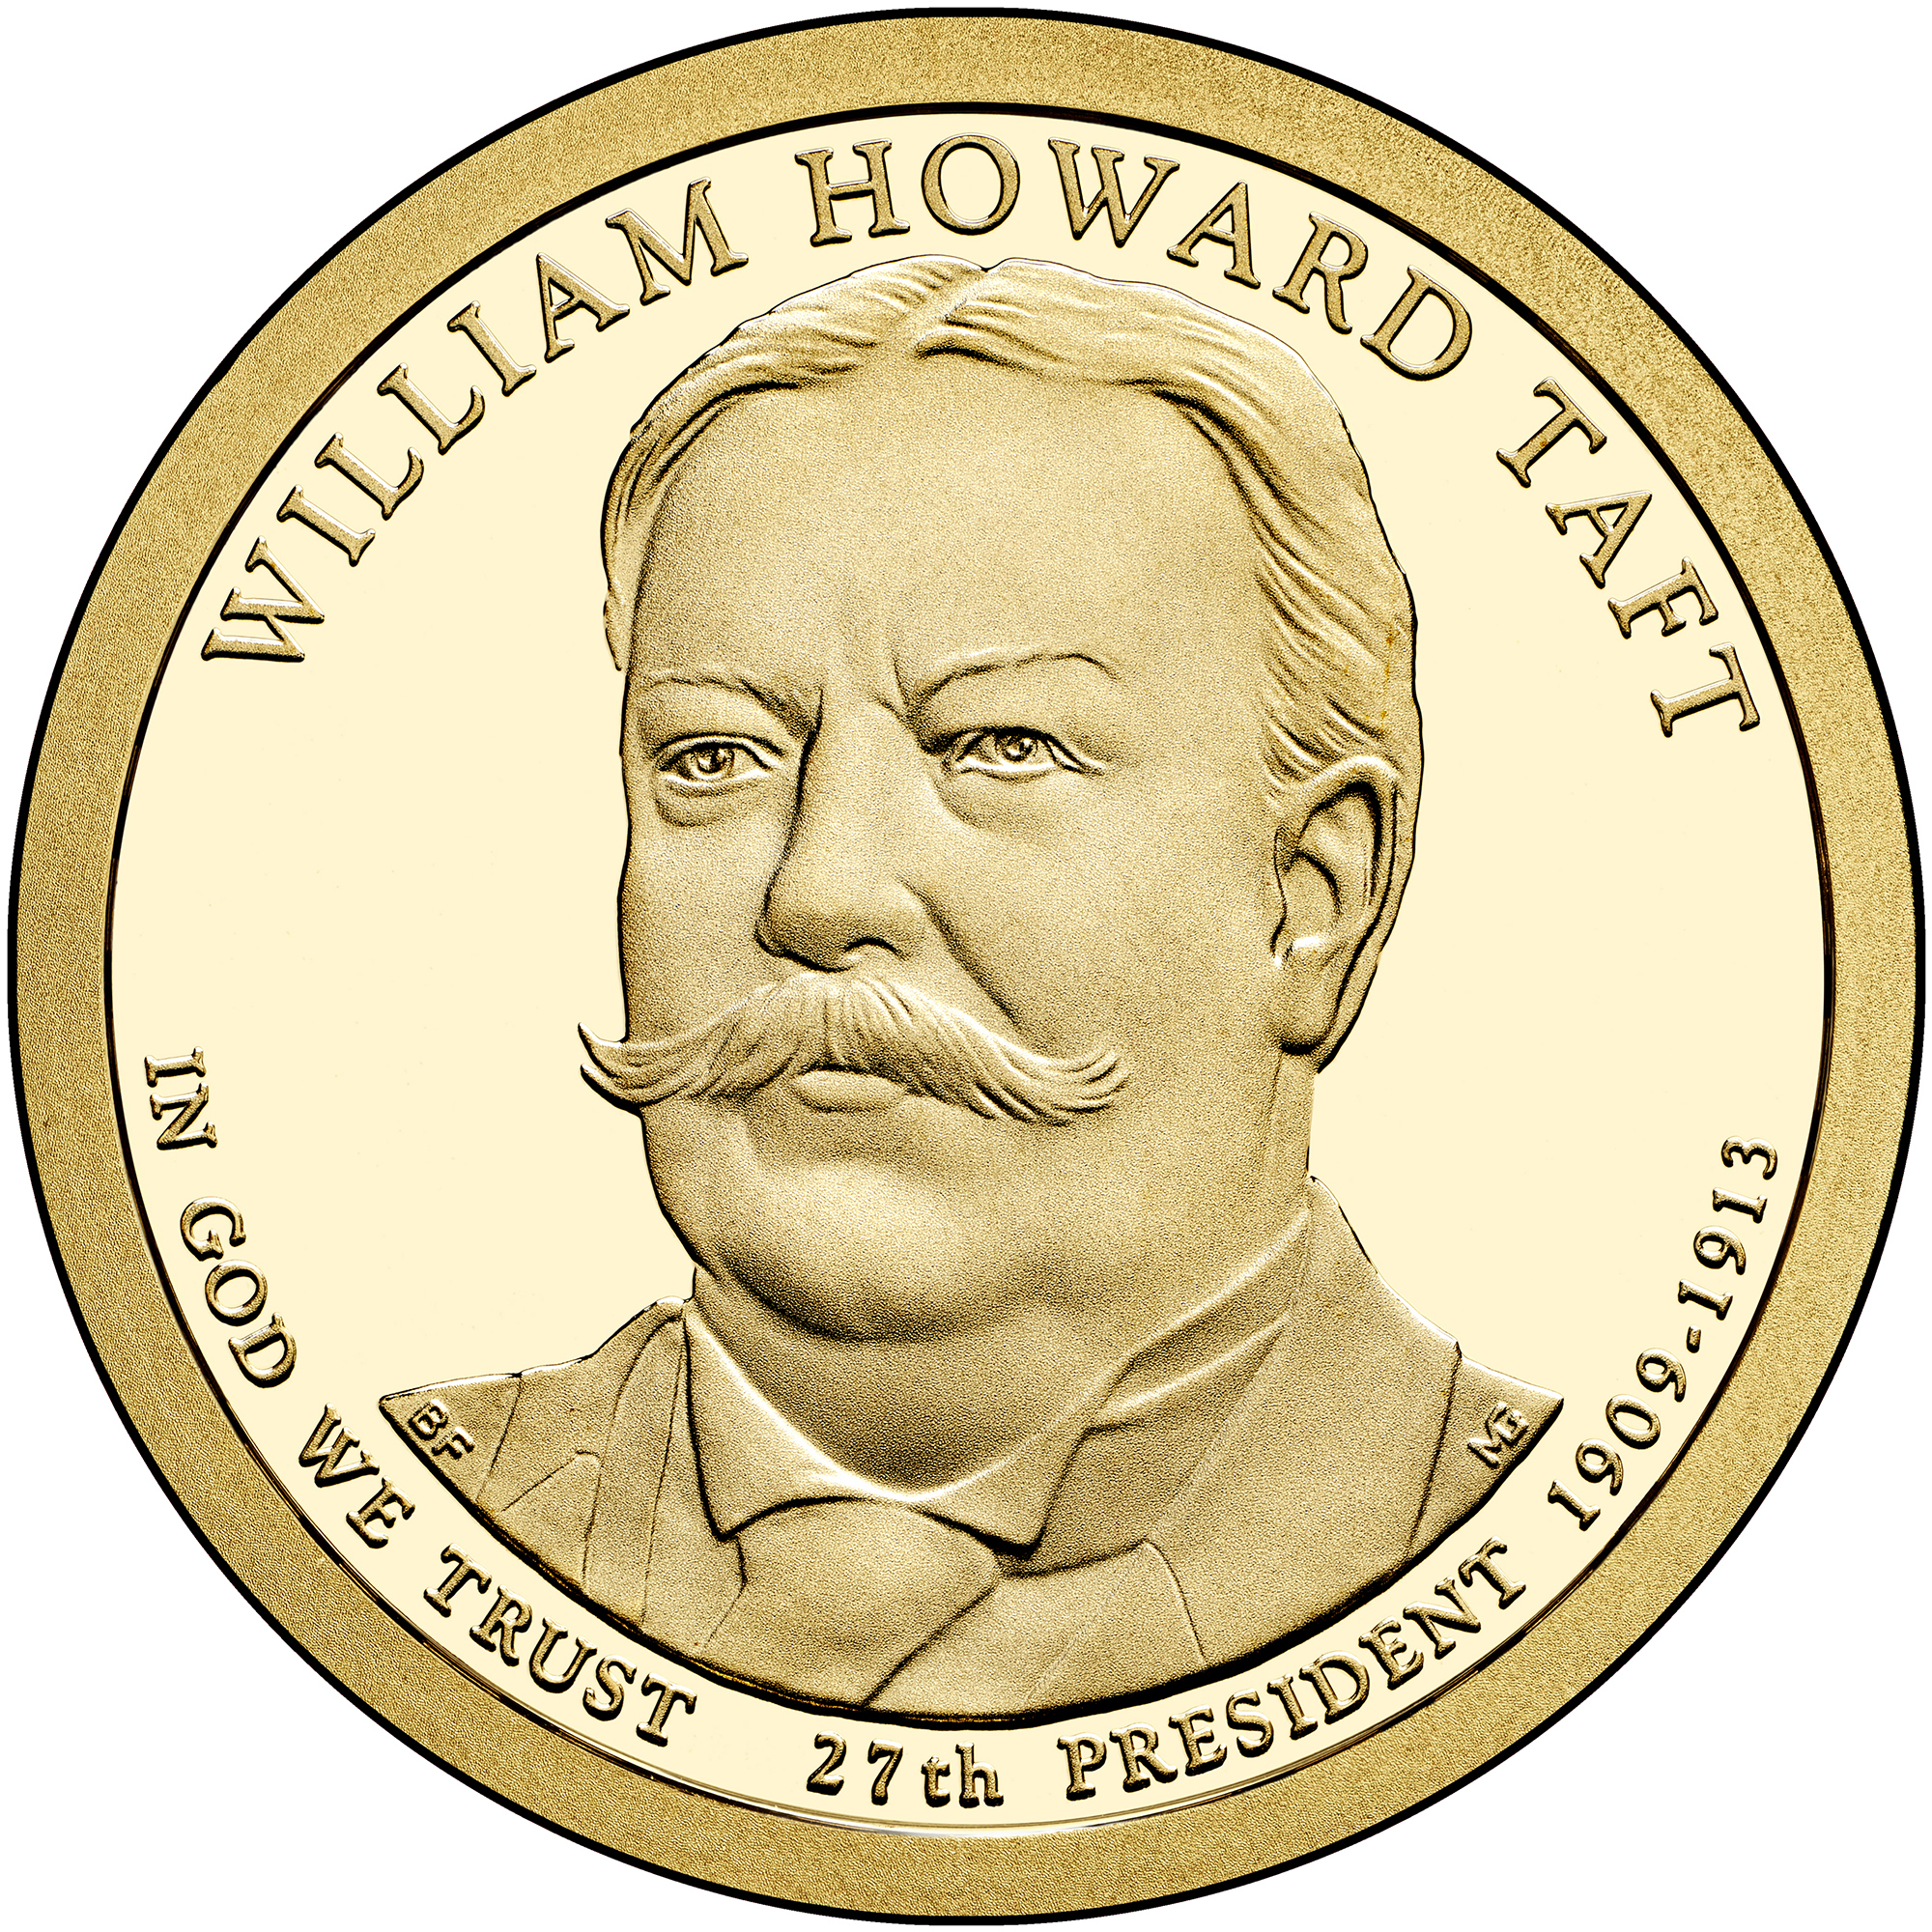 2013 Presidential Dollar Coin William Howard Taft Proof Obverse